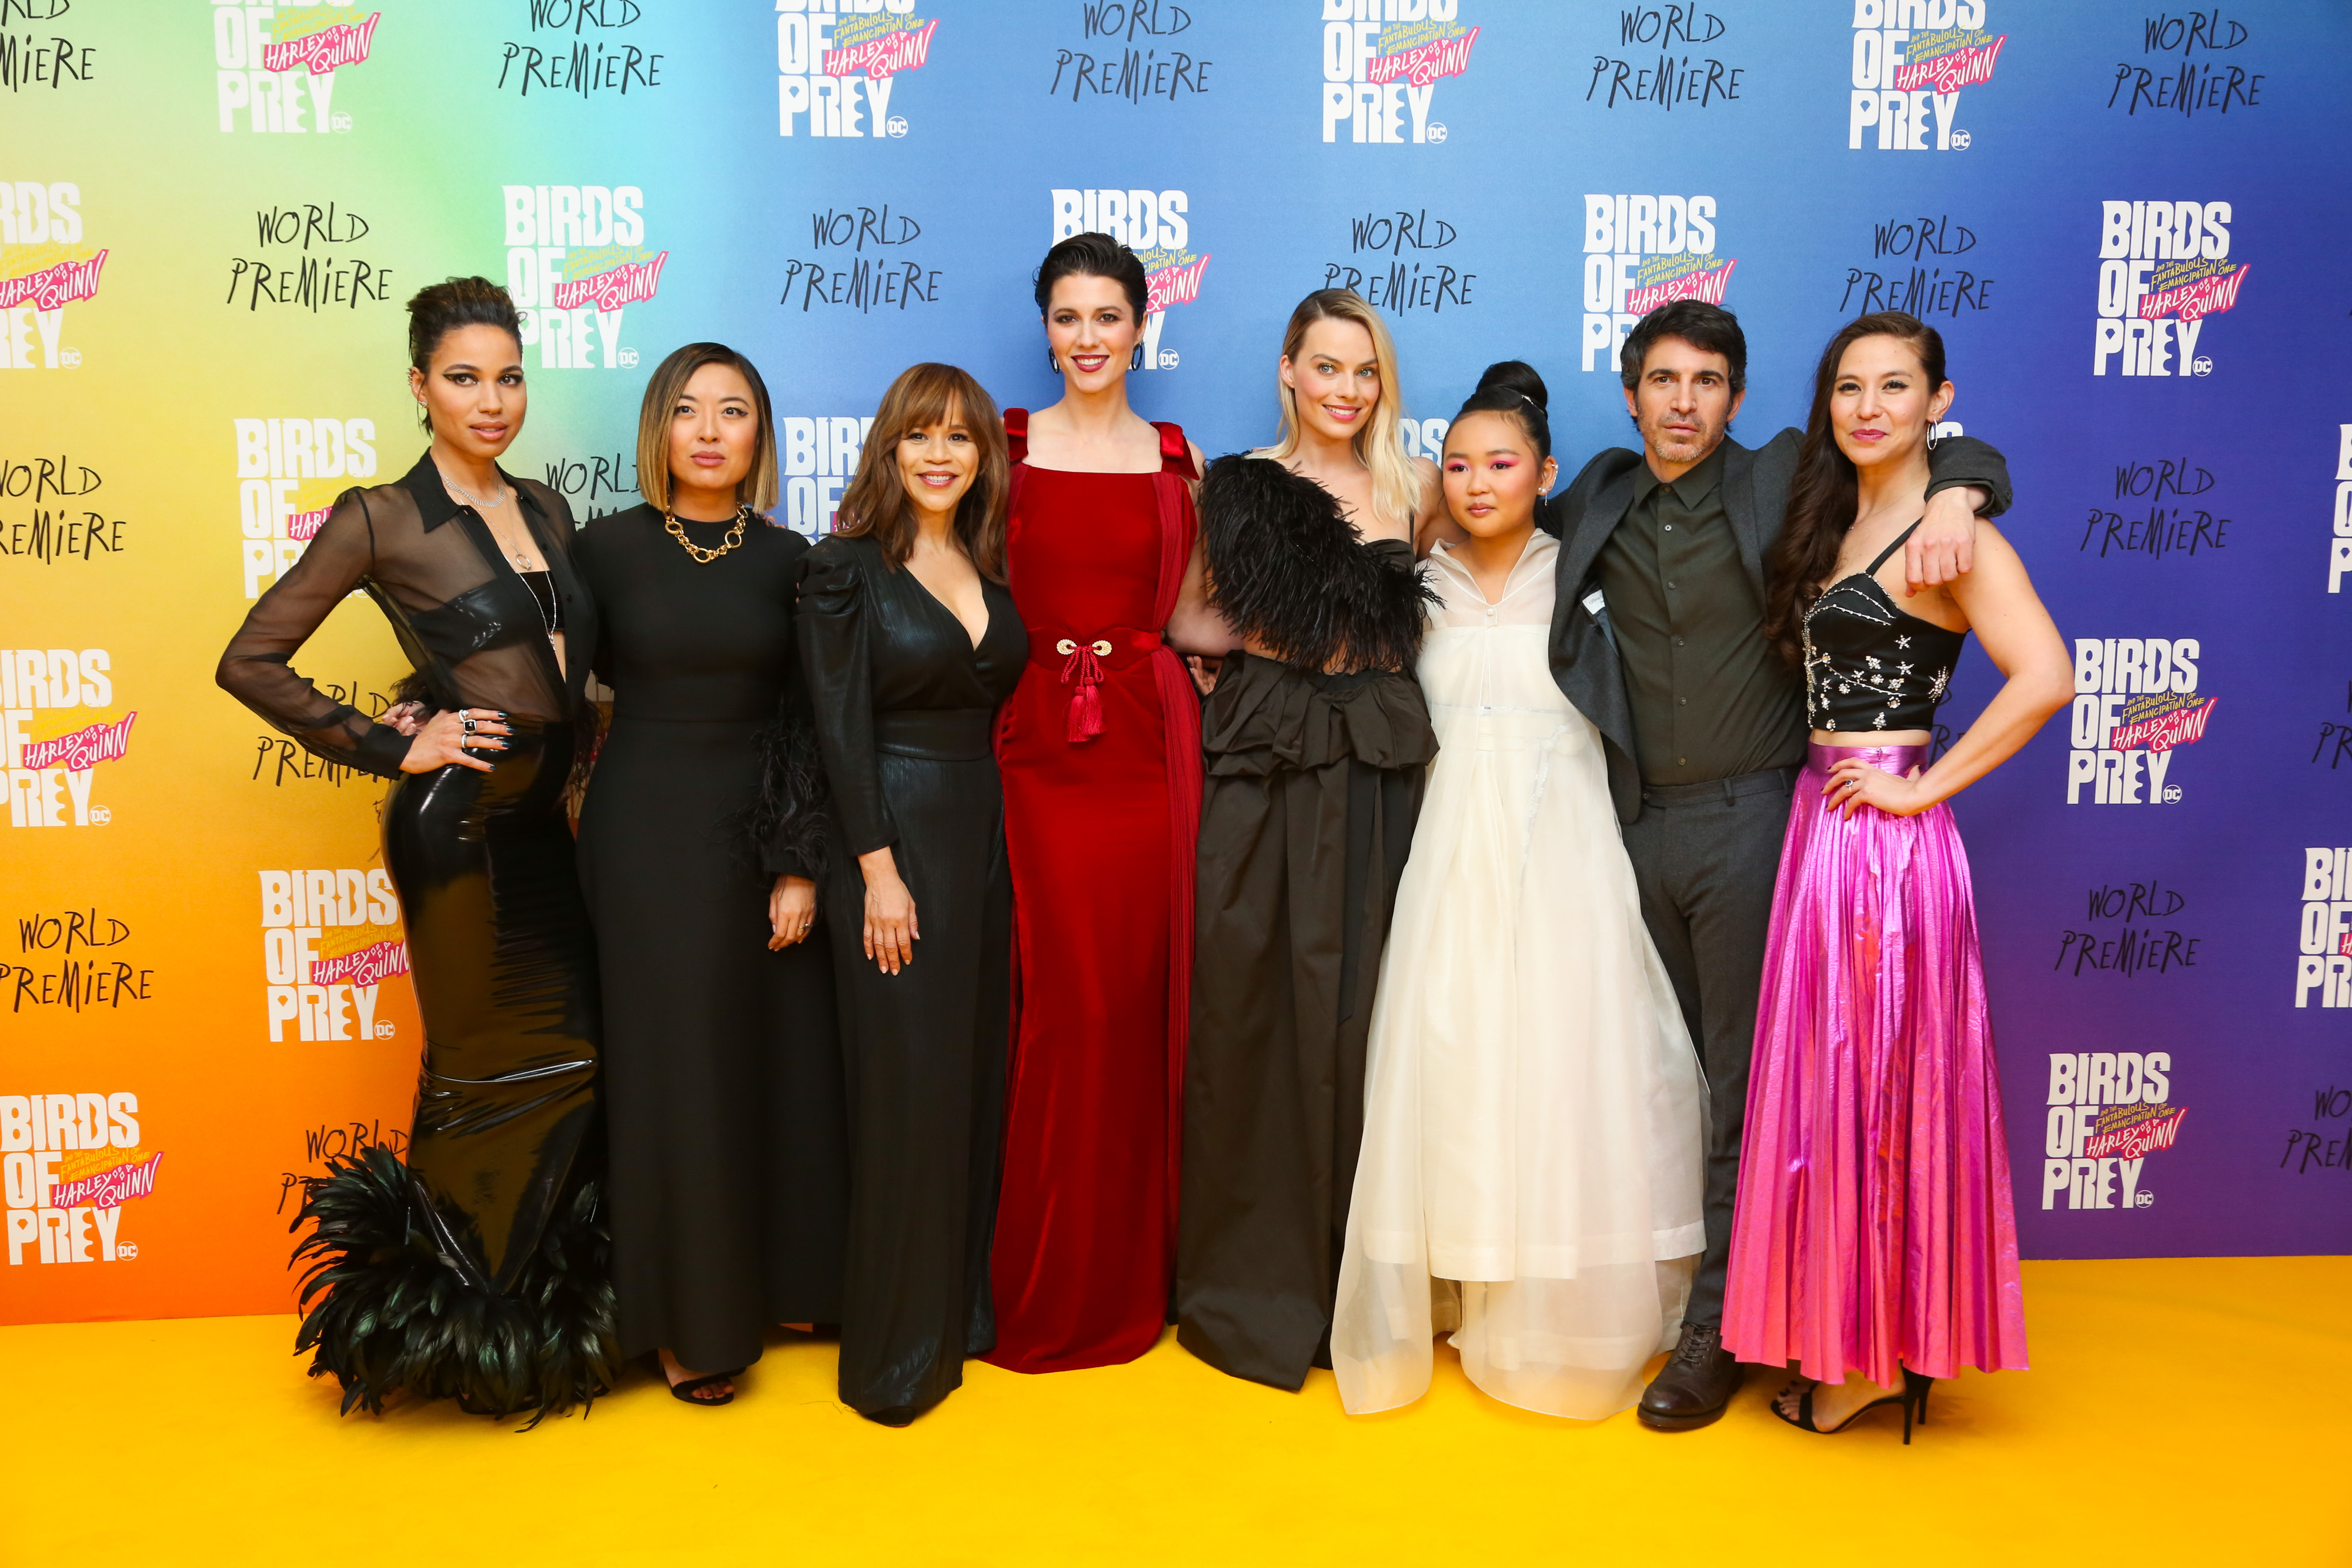 Birds Of Prey Check Out Some Fantabulous Photos From The Yellow Carpet World Premiere